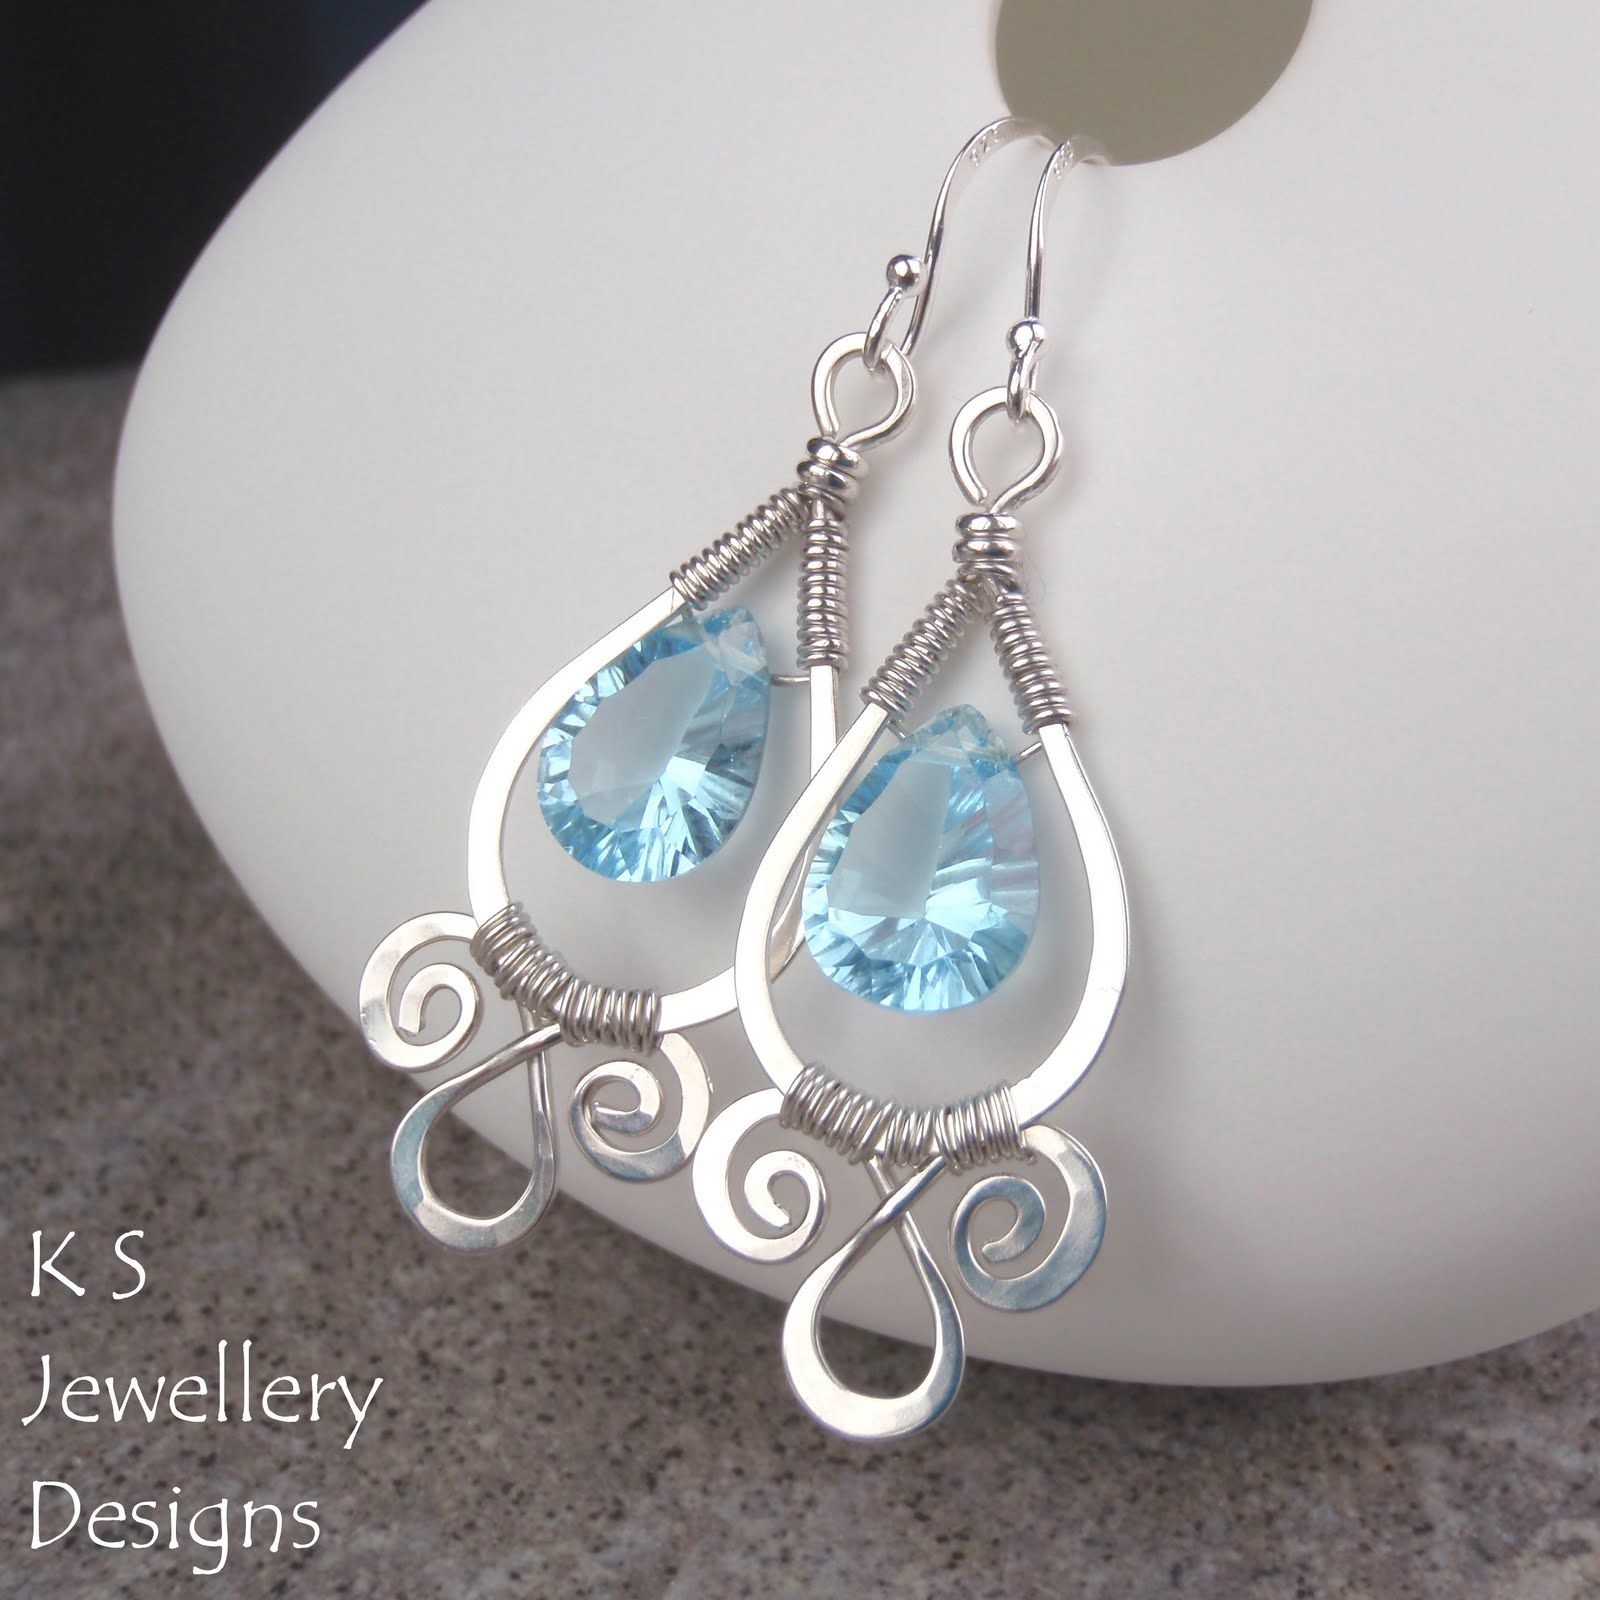 World Jewellery Designs New Wire Jewelry Tutorial  Sprial Loop